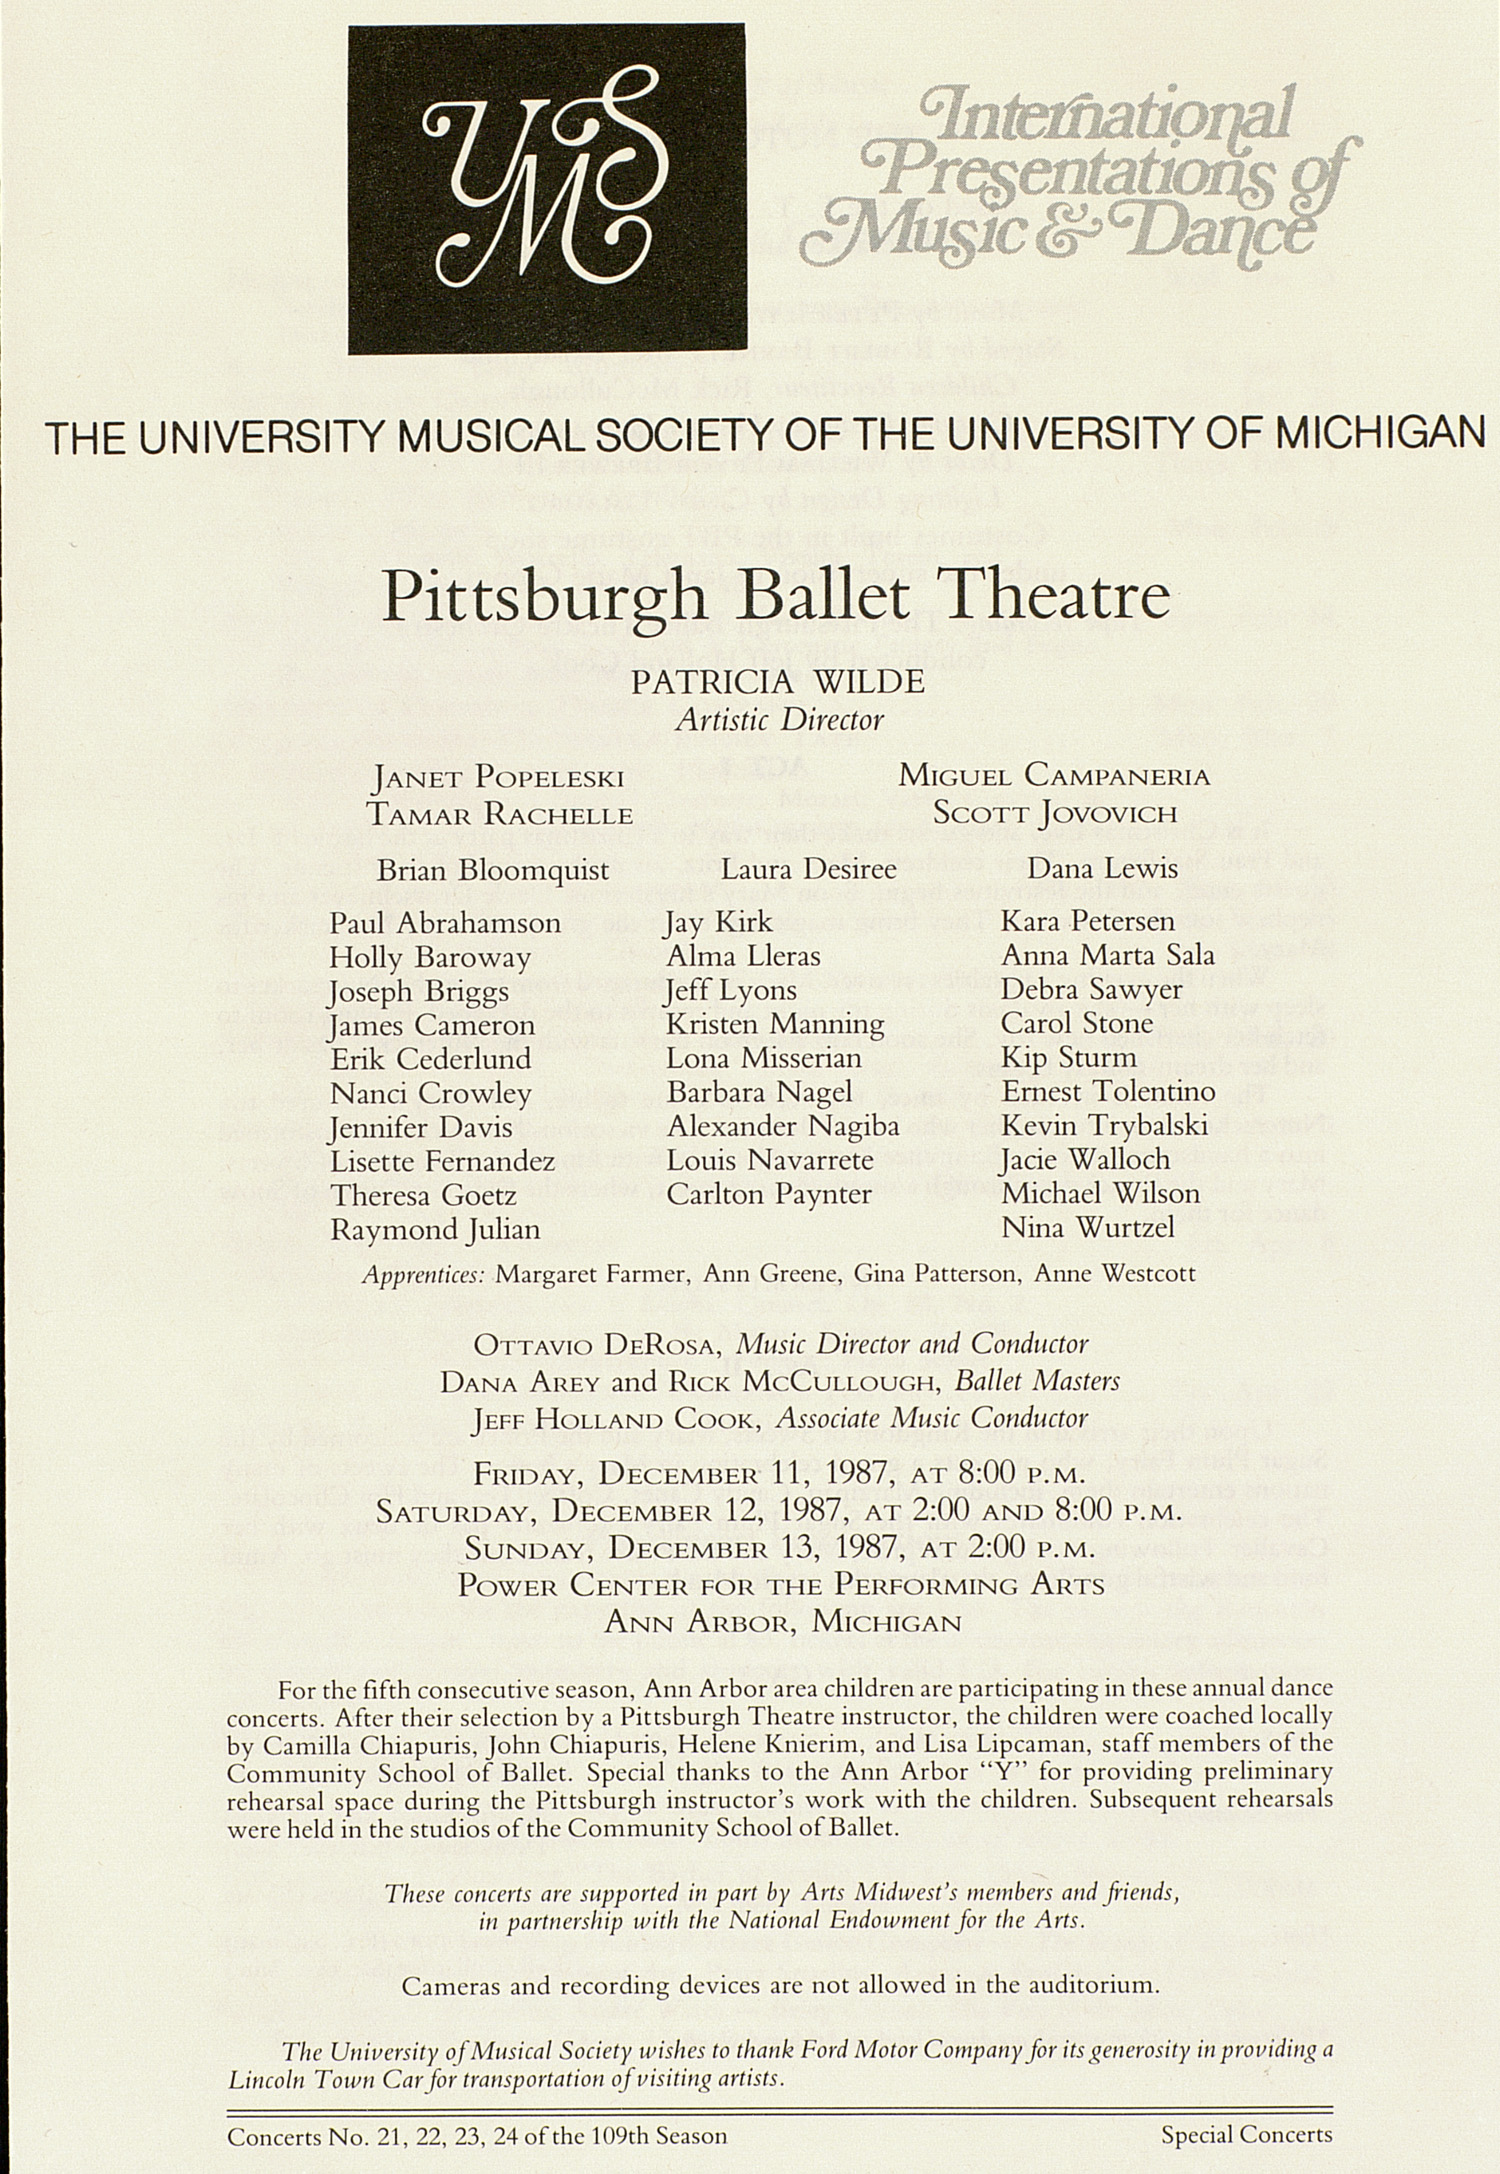 UMS Concert Program, December 11-13, 1987: Internation Presentations Of Music & Dance -- Pittsburgh Ballet Theatre image